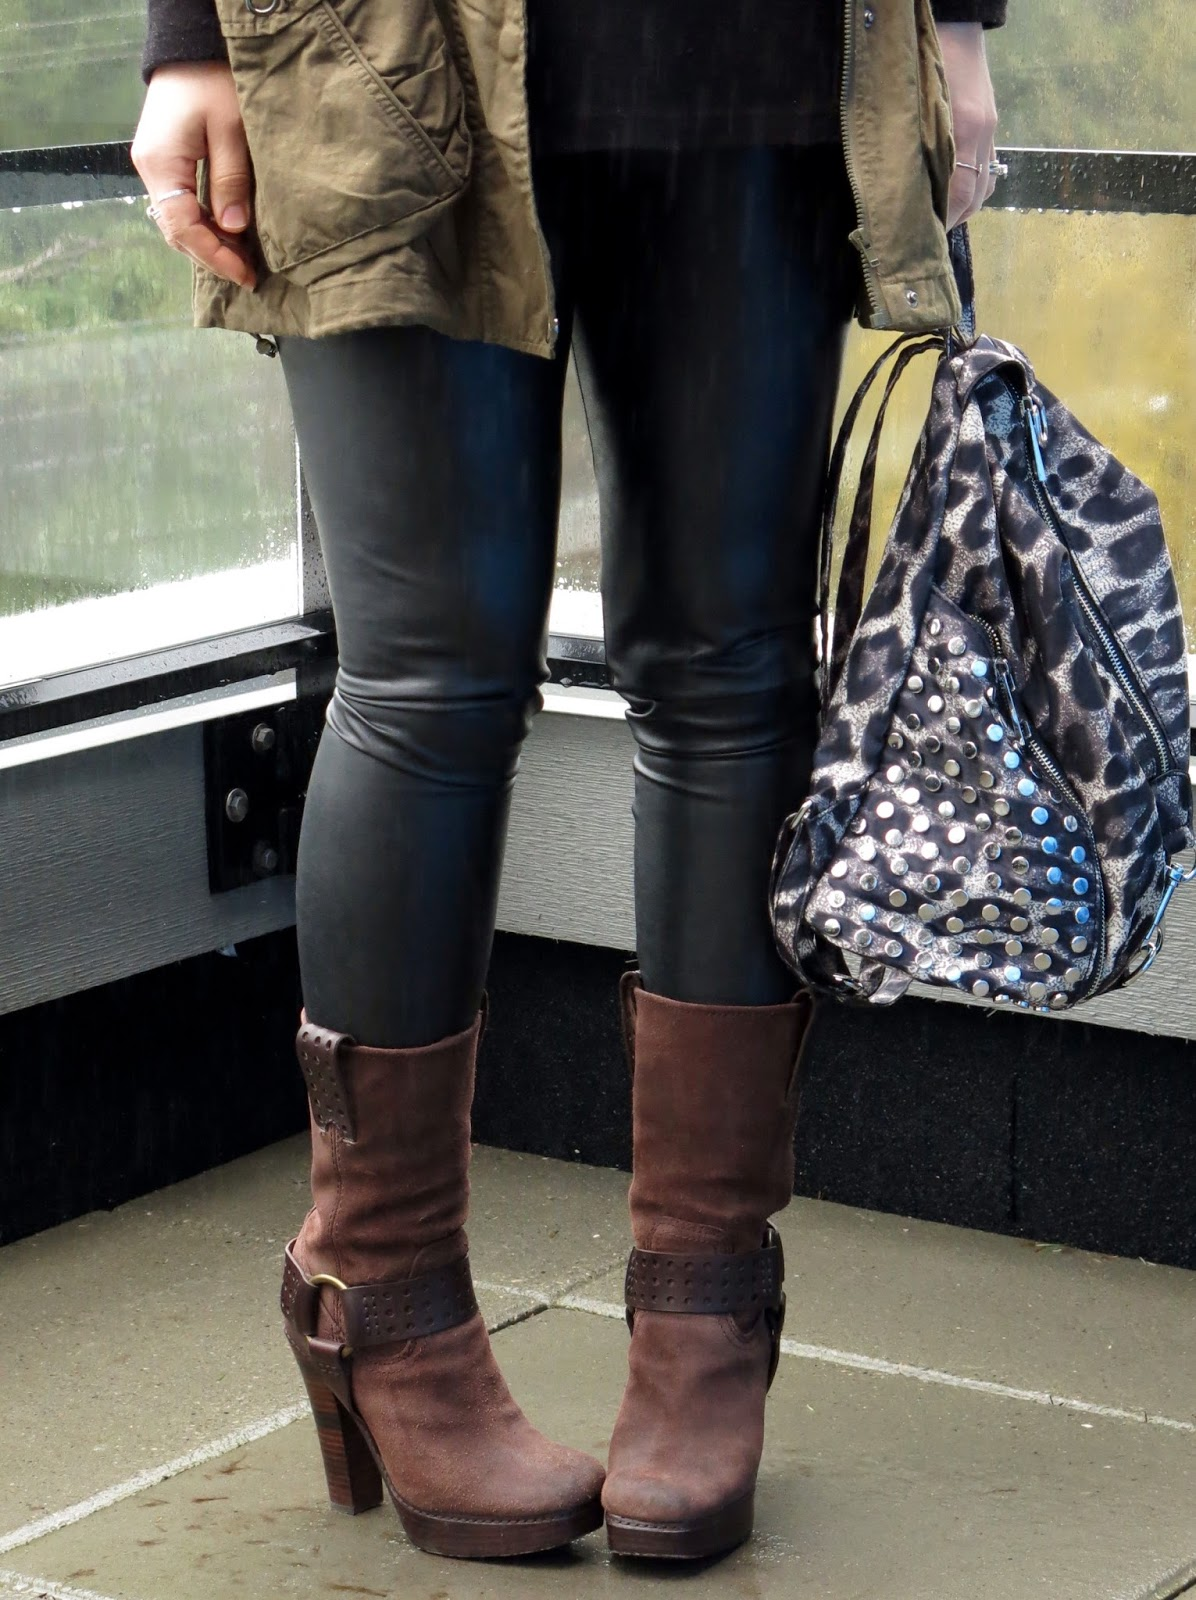 faux-leather leggings, leopard-print backpack, and Frye booties